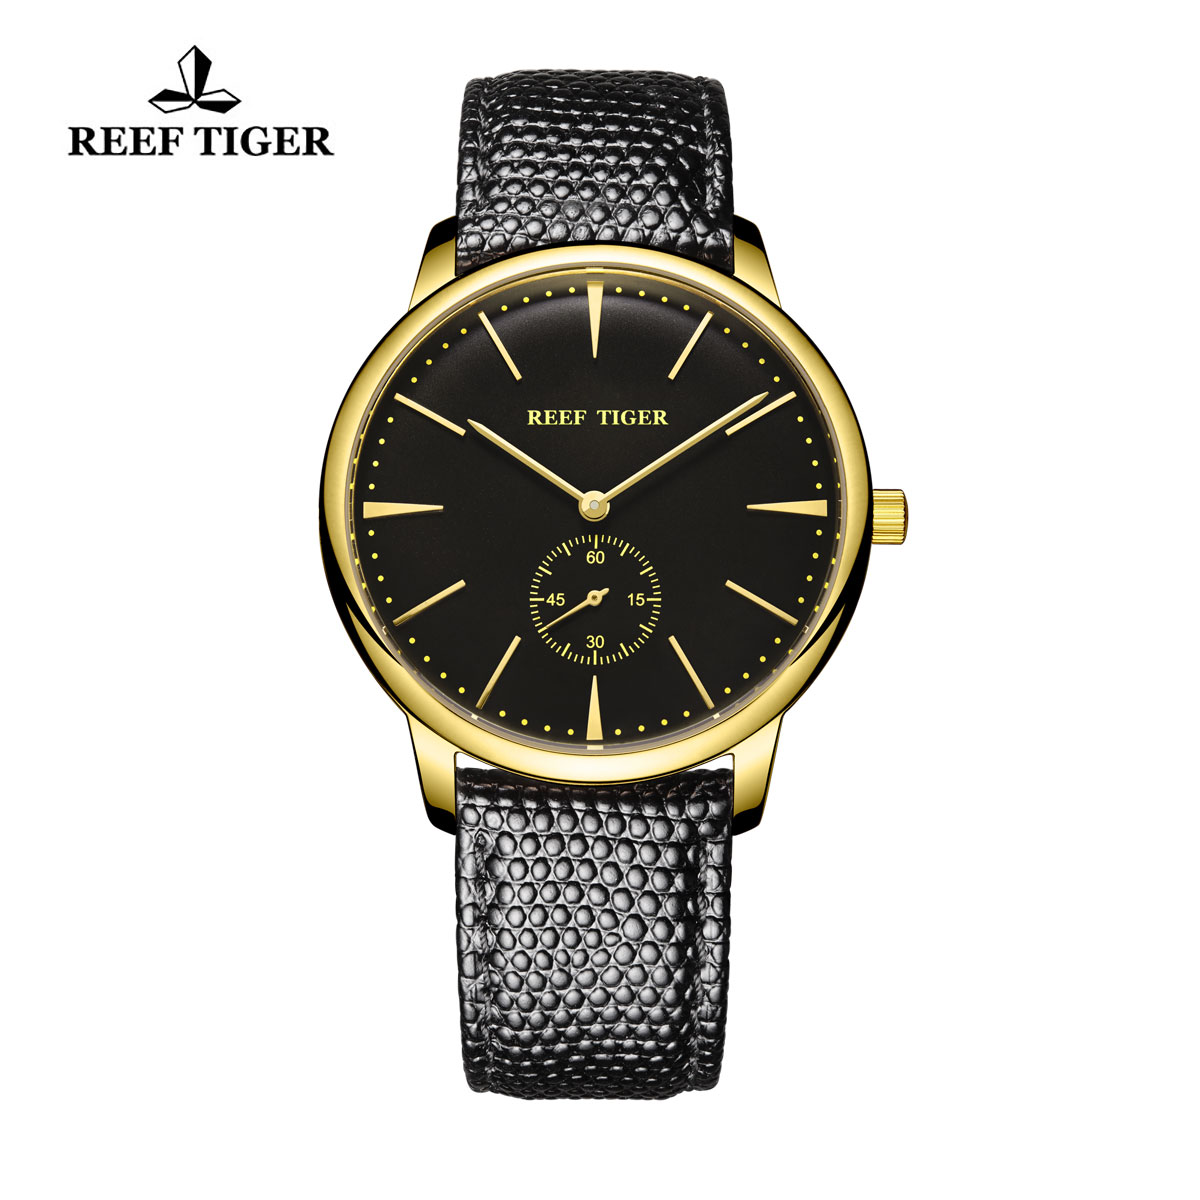 Reef Tiger Vintage Couple Watch Black Dial Yellow Gold Calfskin Leather RGA820-GBB